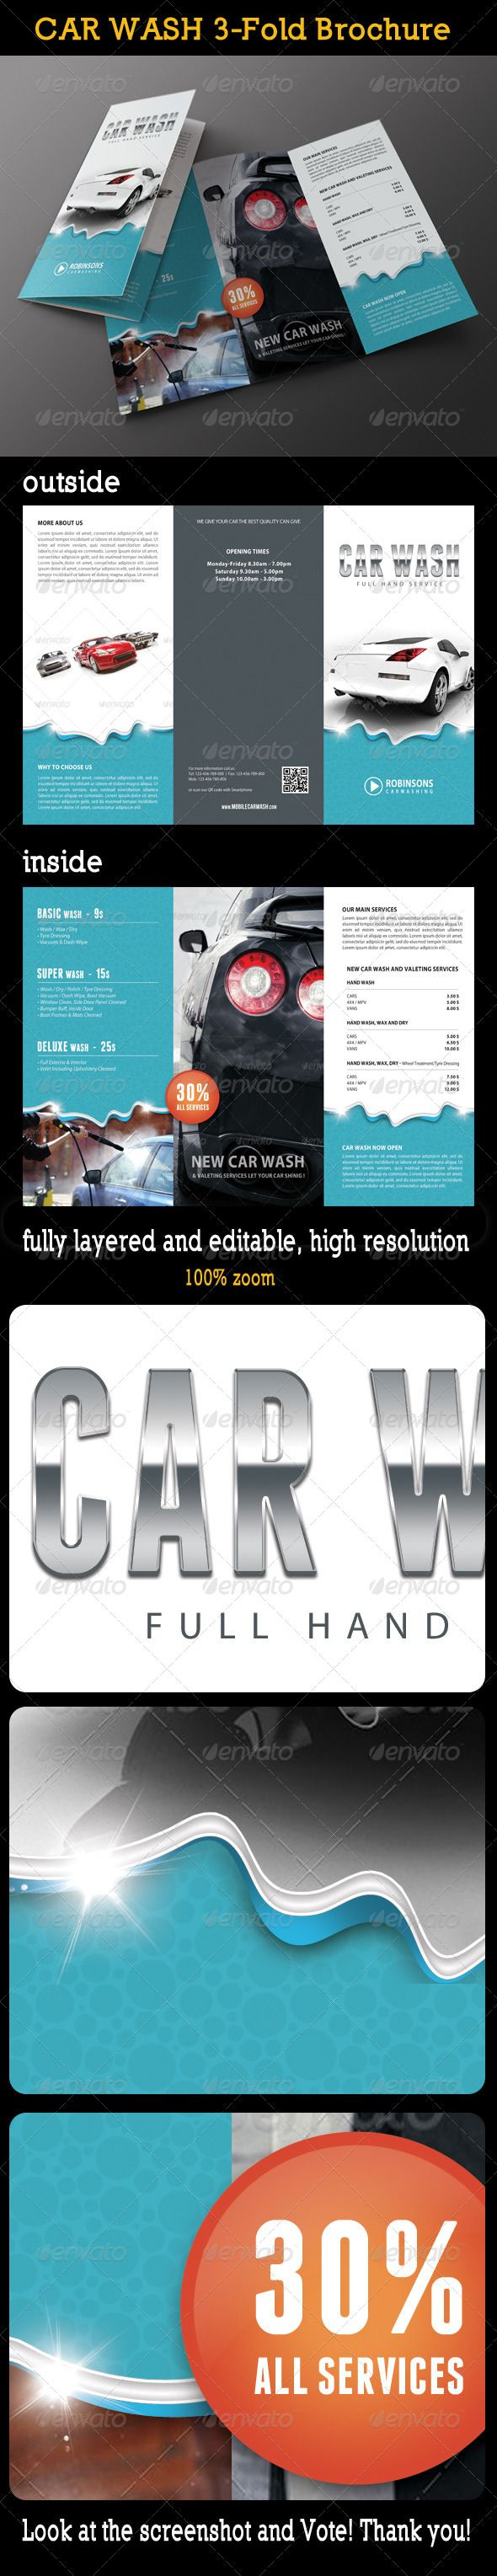 car detail flyer template google search auto detail car wash auto detailing services or car wash equipment highly editable psd brochure template